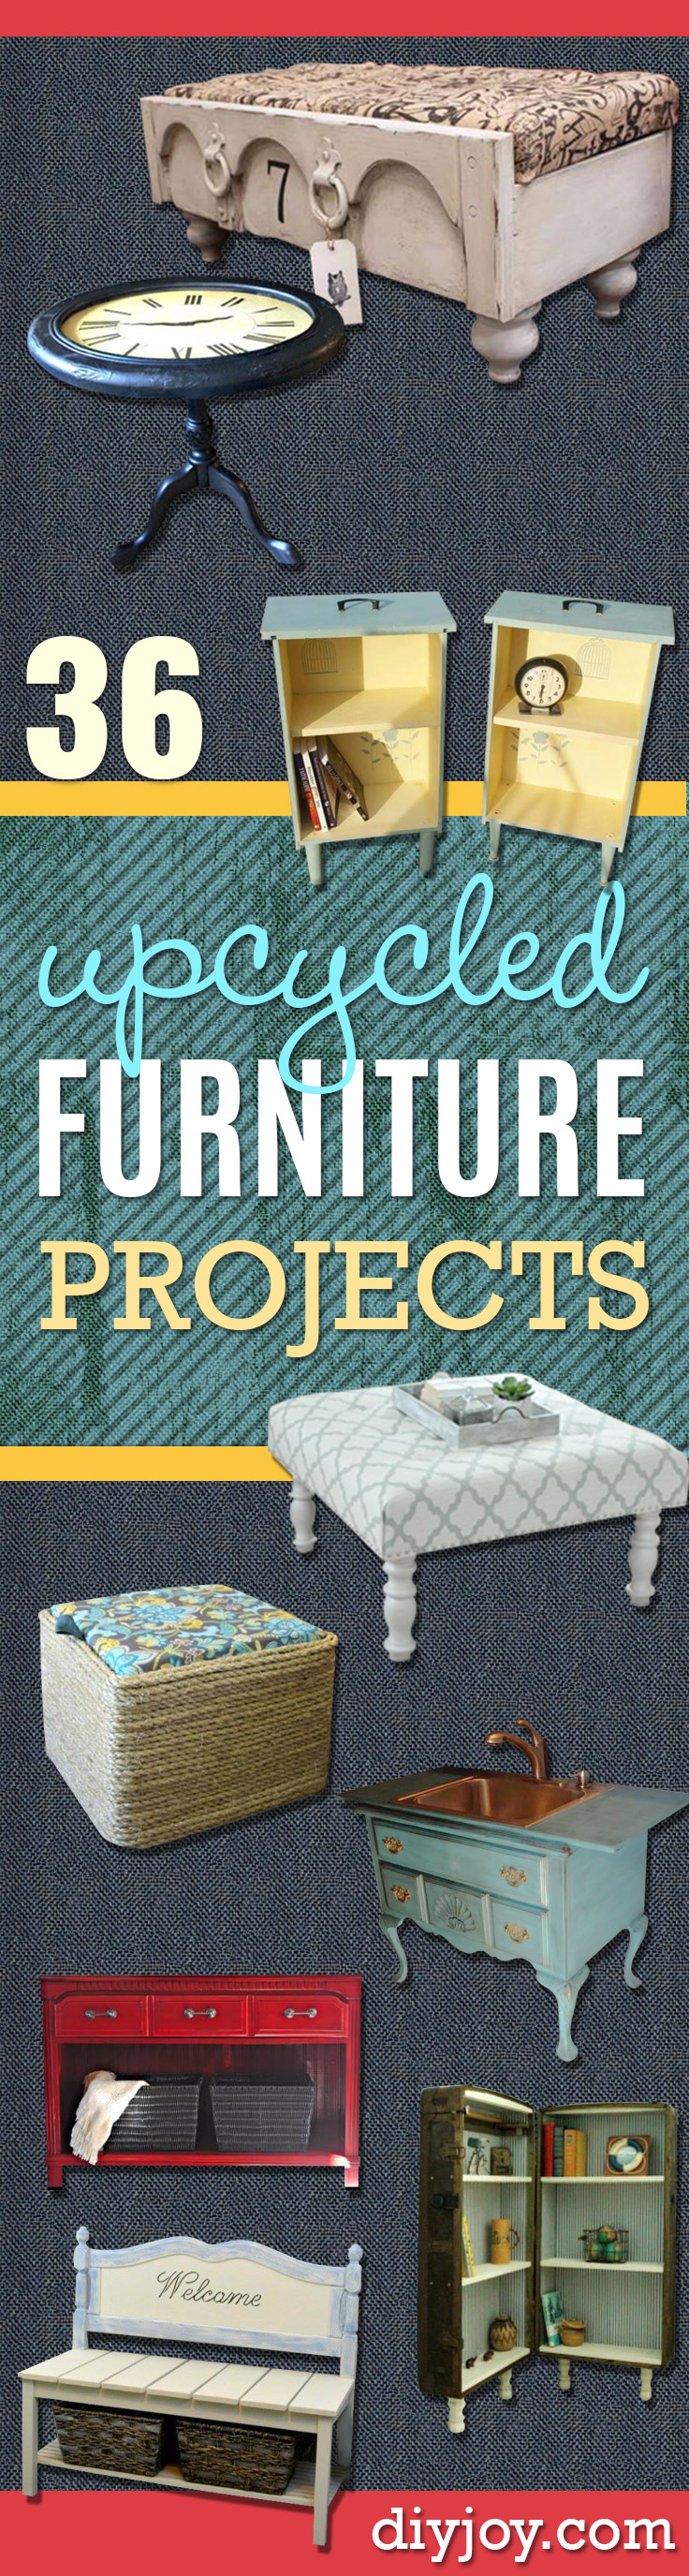 Upcycled Furniture Projects - Repurposed Home Decor and Furniture You Can Make On a Budget. Easy Vintage and Rustic Looks for Bedroom, Bath, Kitchen and Living Room.